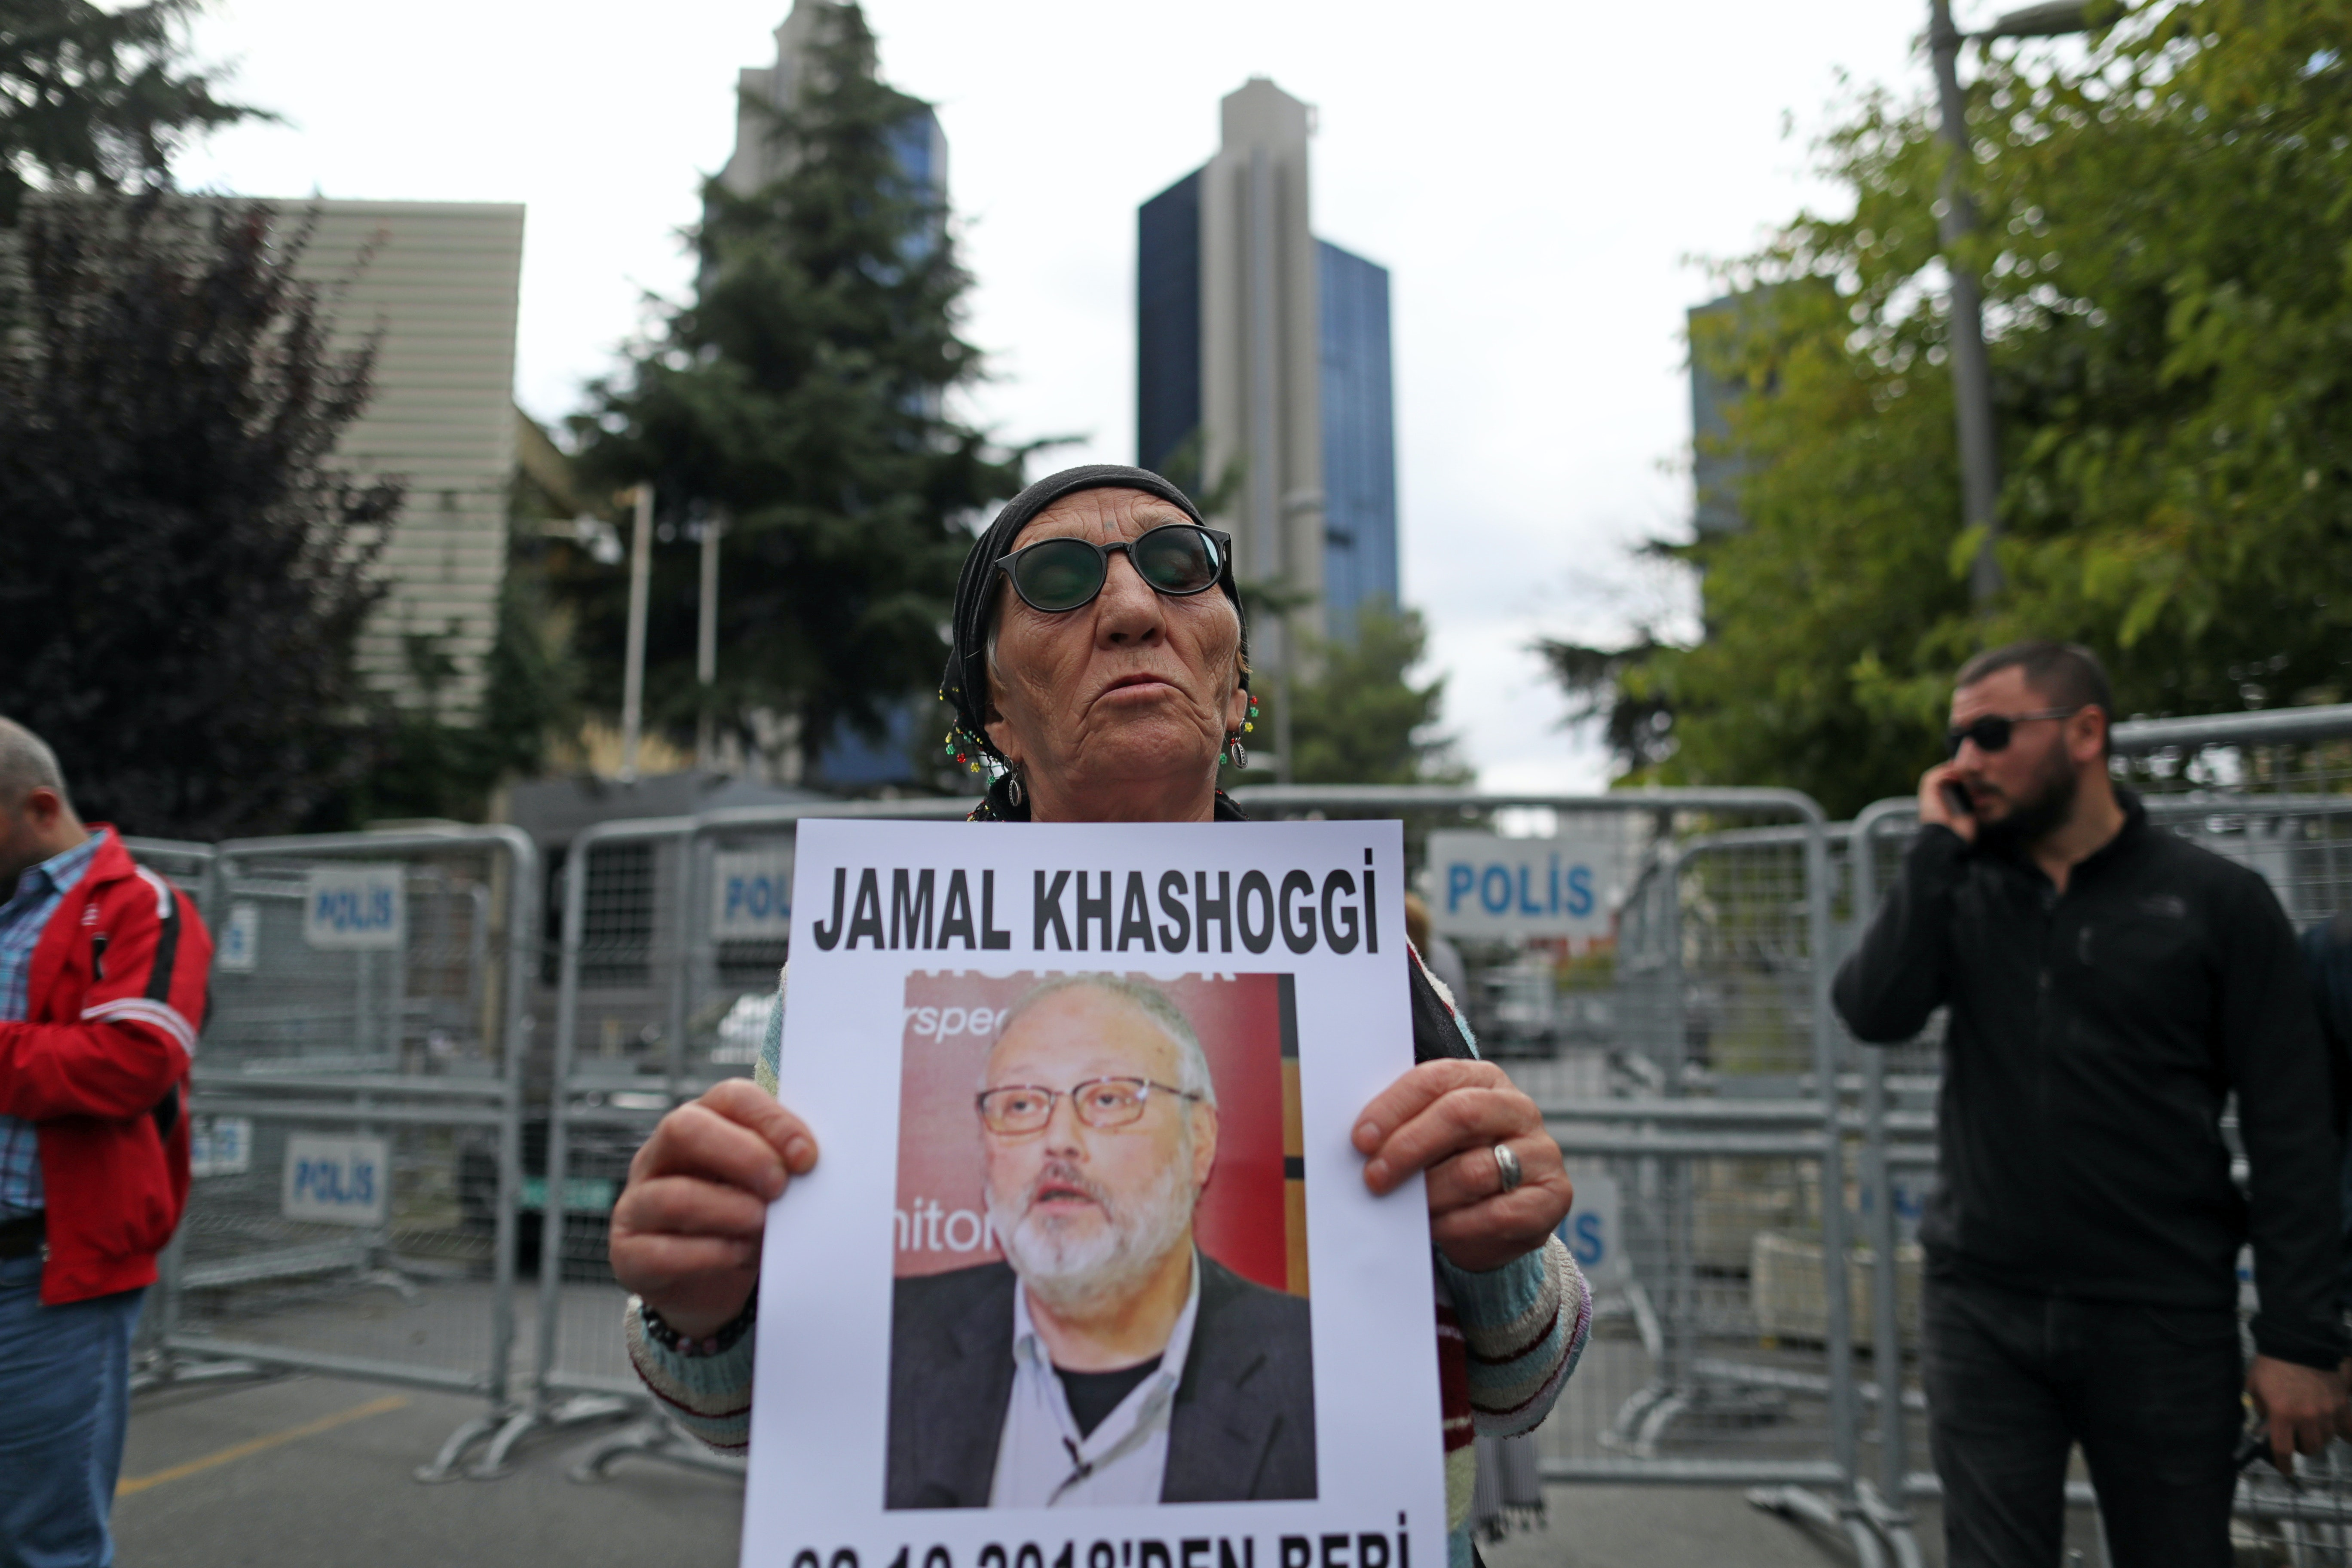 Jamal Khashoggi disappearance a defining moment for Saudi Arabia's relations with the West